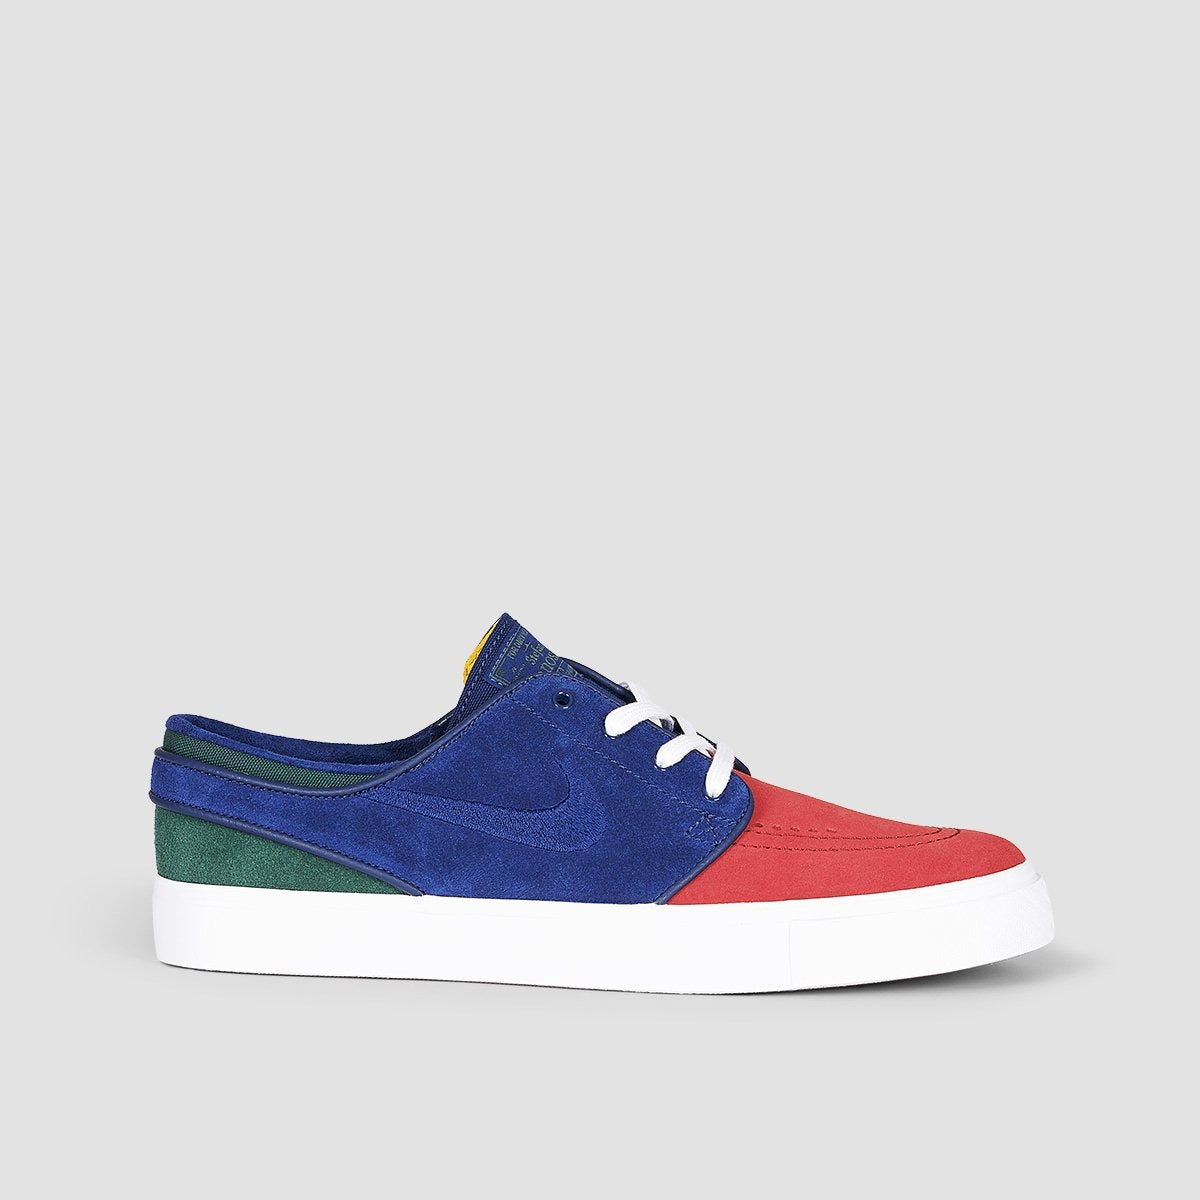 cigarro tapa Inhalar  Nike SB Zoom Stefan Janoski Red Crush/Blue Void/White/Midnight Green -  rollersnakes.co.uk – Rollersnakes